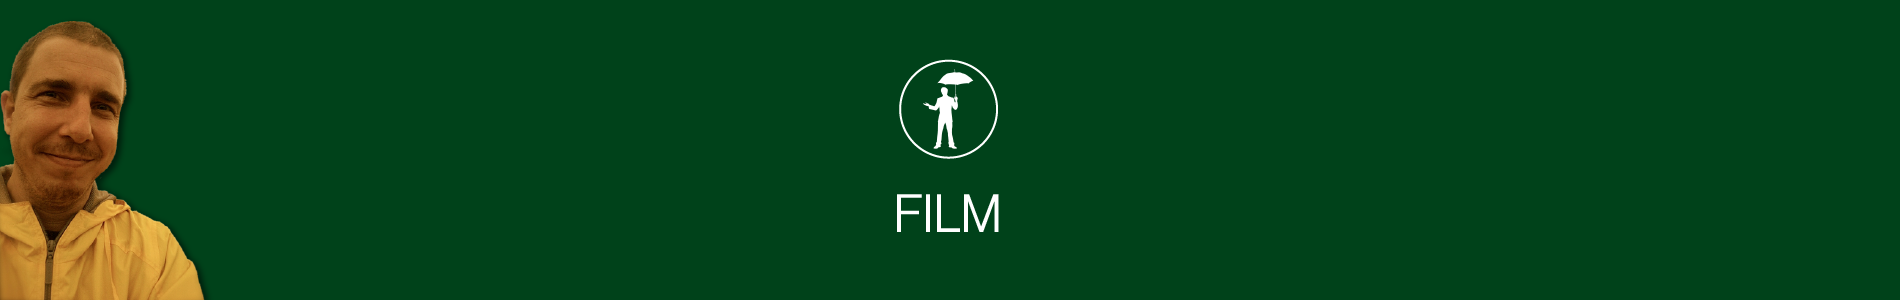 Header image for Film page